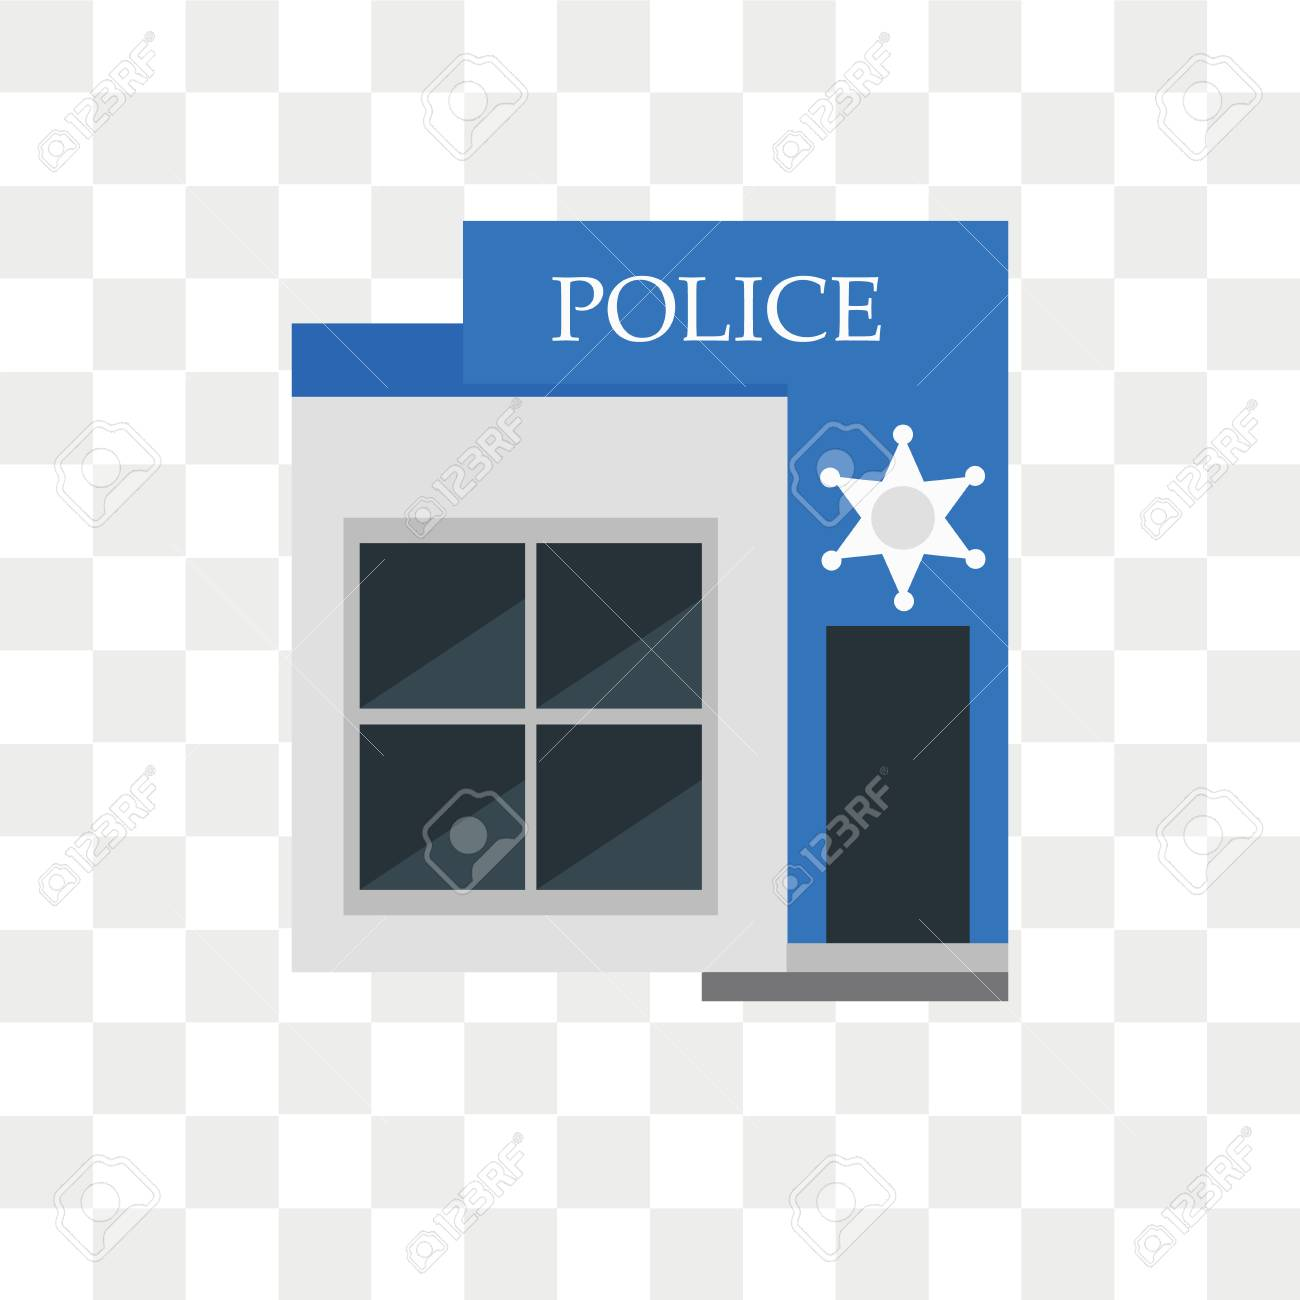 087ca8620dd934 Police vector icon isolated on transparent background, Police logo concept  Stock Vector - 108561412